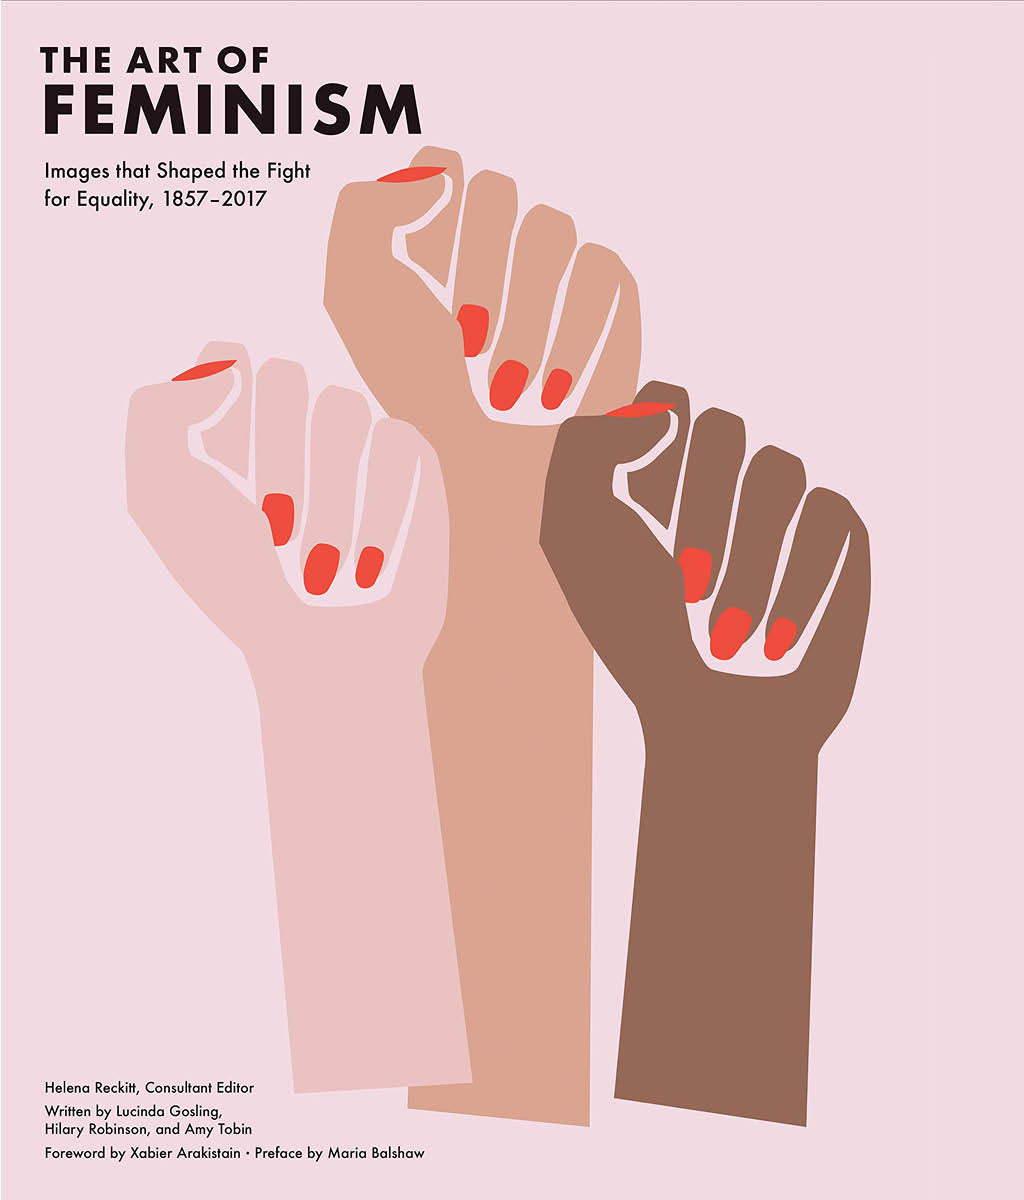 Art of Feminism by Lucinda Gosling, Hilary Robinson, Amy Tobin